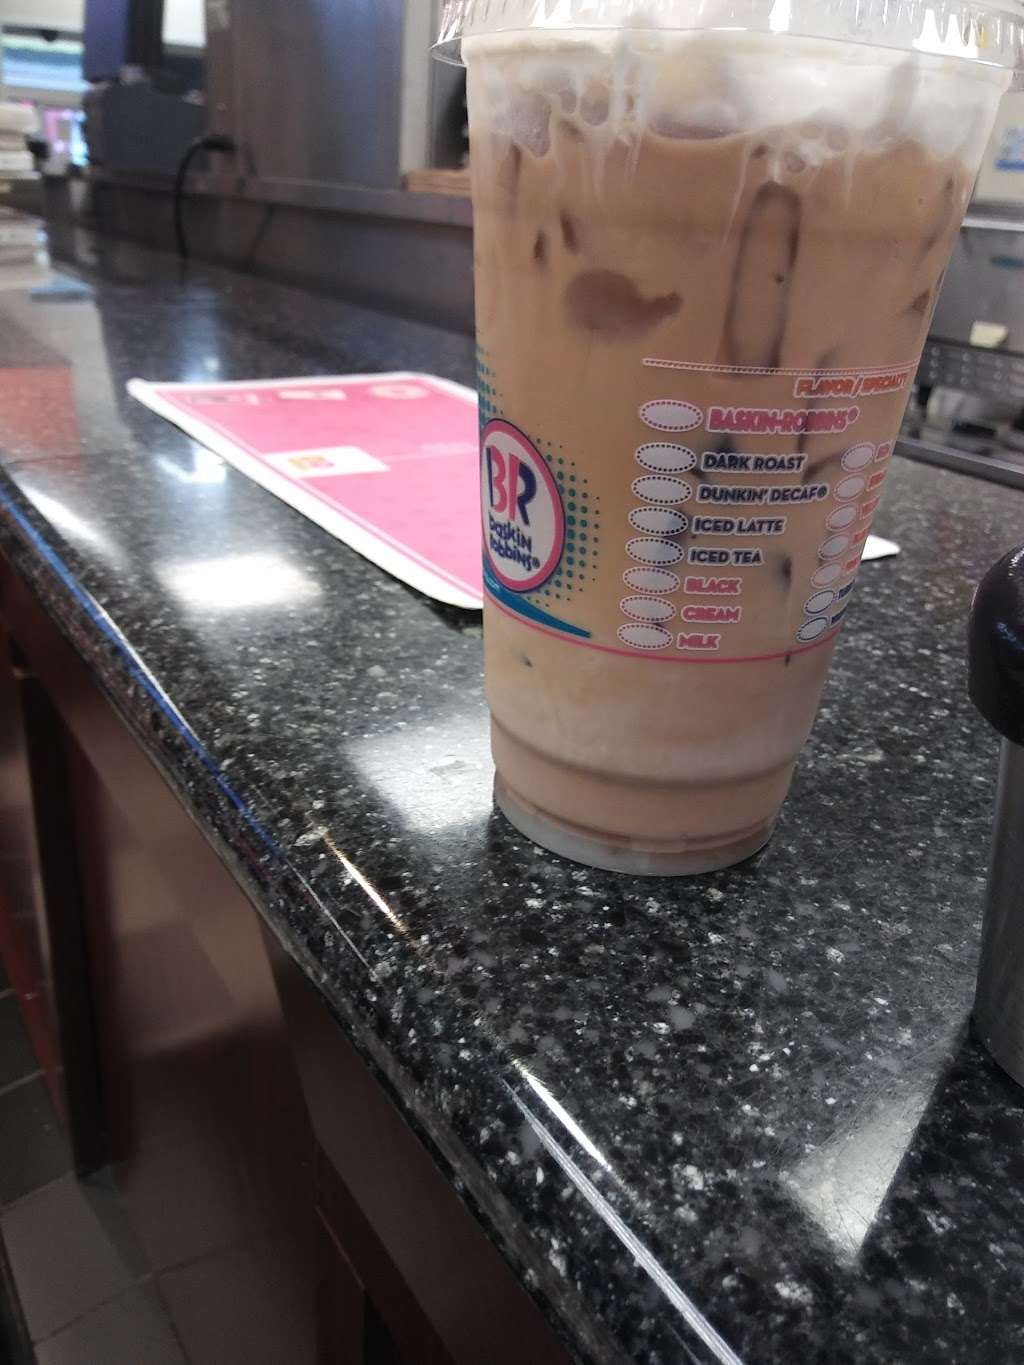 Dunkin Donuts - cafe  | Photo 9 of 10 | Address: 250 Bergen Turnpike, Little Ferry, NJ 07643, USA | Phone: (201) 373-0373